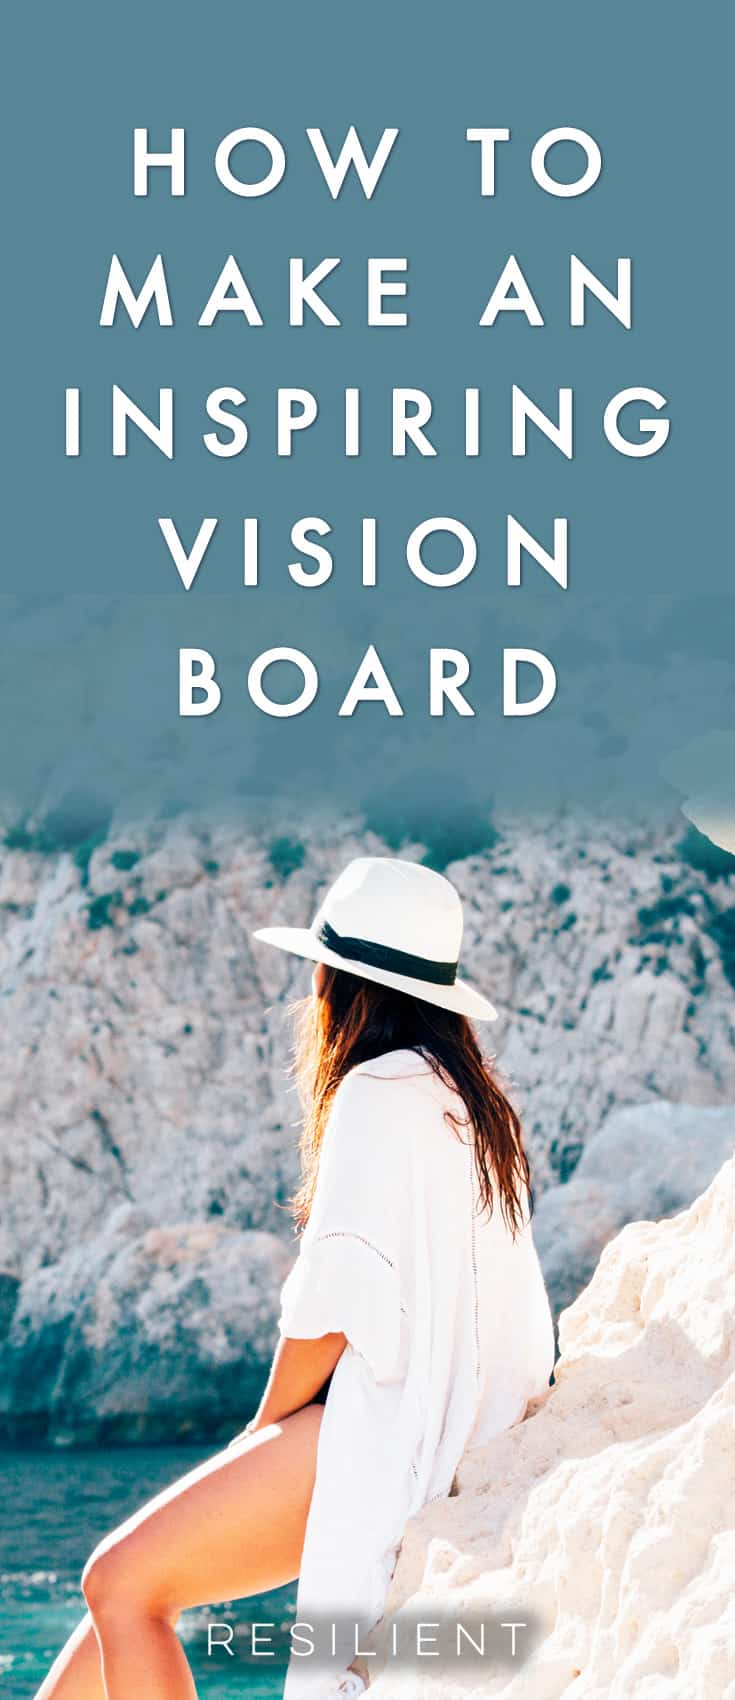 Have you ever made a vision board? I have! Vision boards are basically a very visual way of goal setting and dreaming about your future with the use of pictures and inspiring images. Here's how to create an inspiring and powerful vision board to improve your life and be happier.